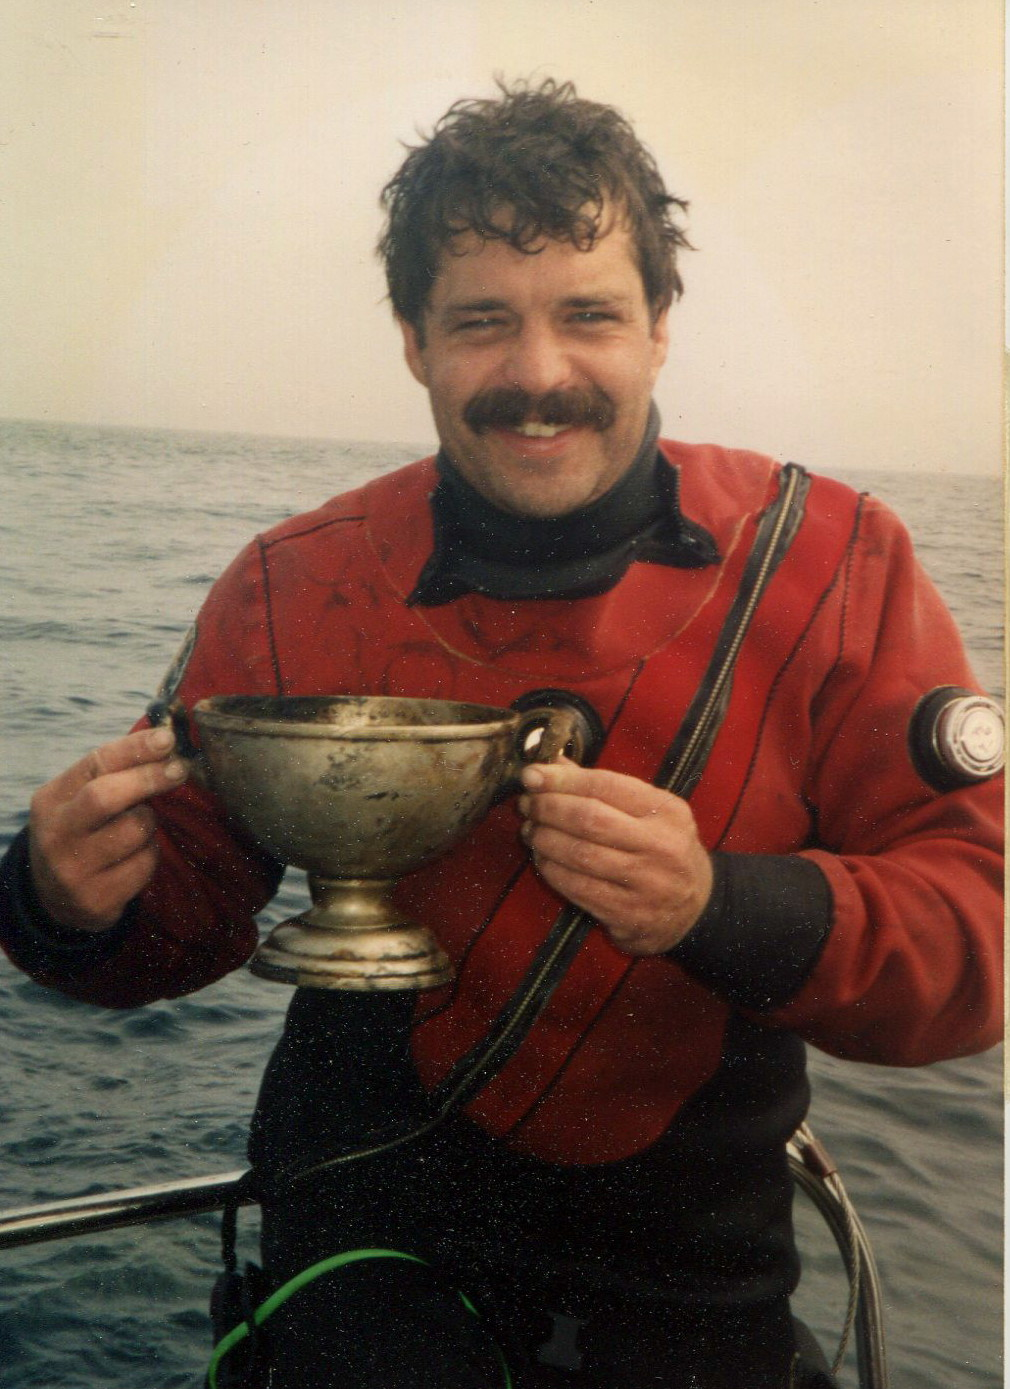 AWD Pat Rooney with silver bowl from the Andrea Doria